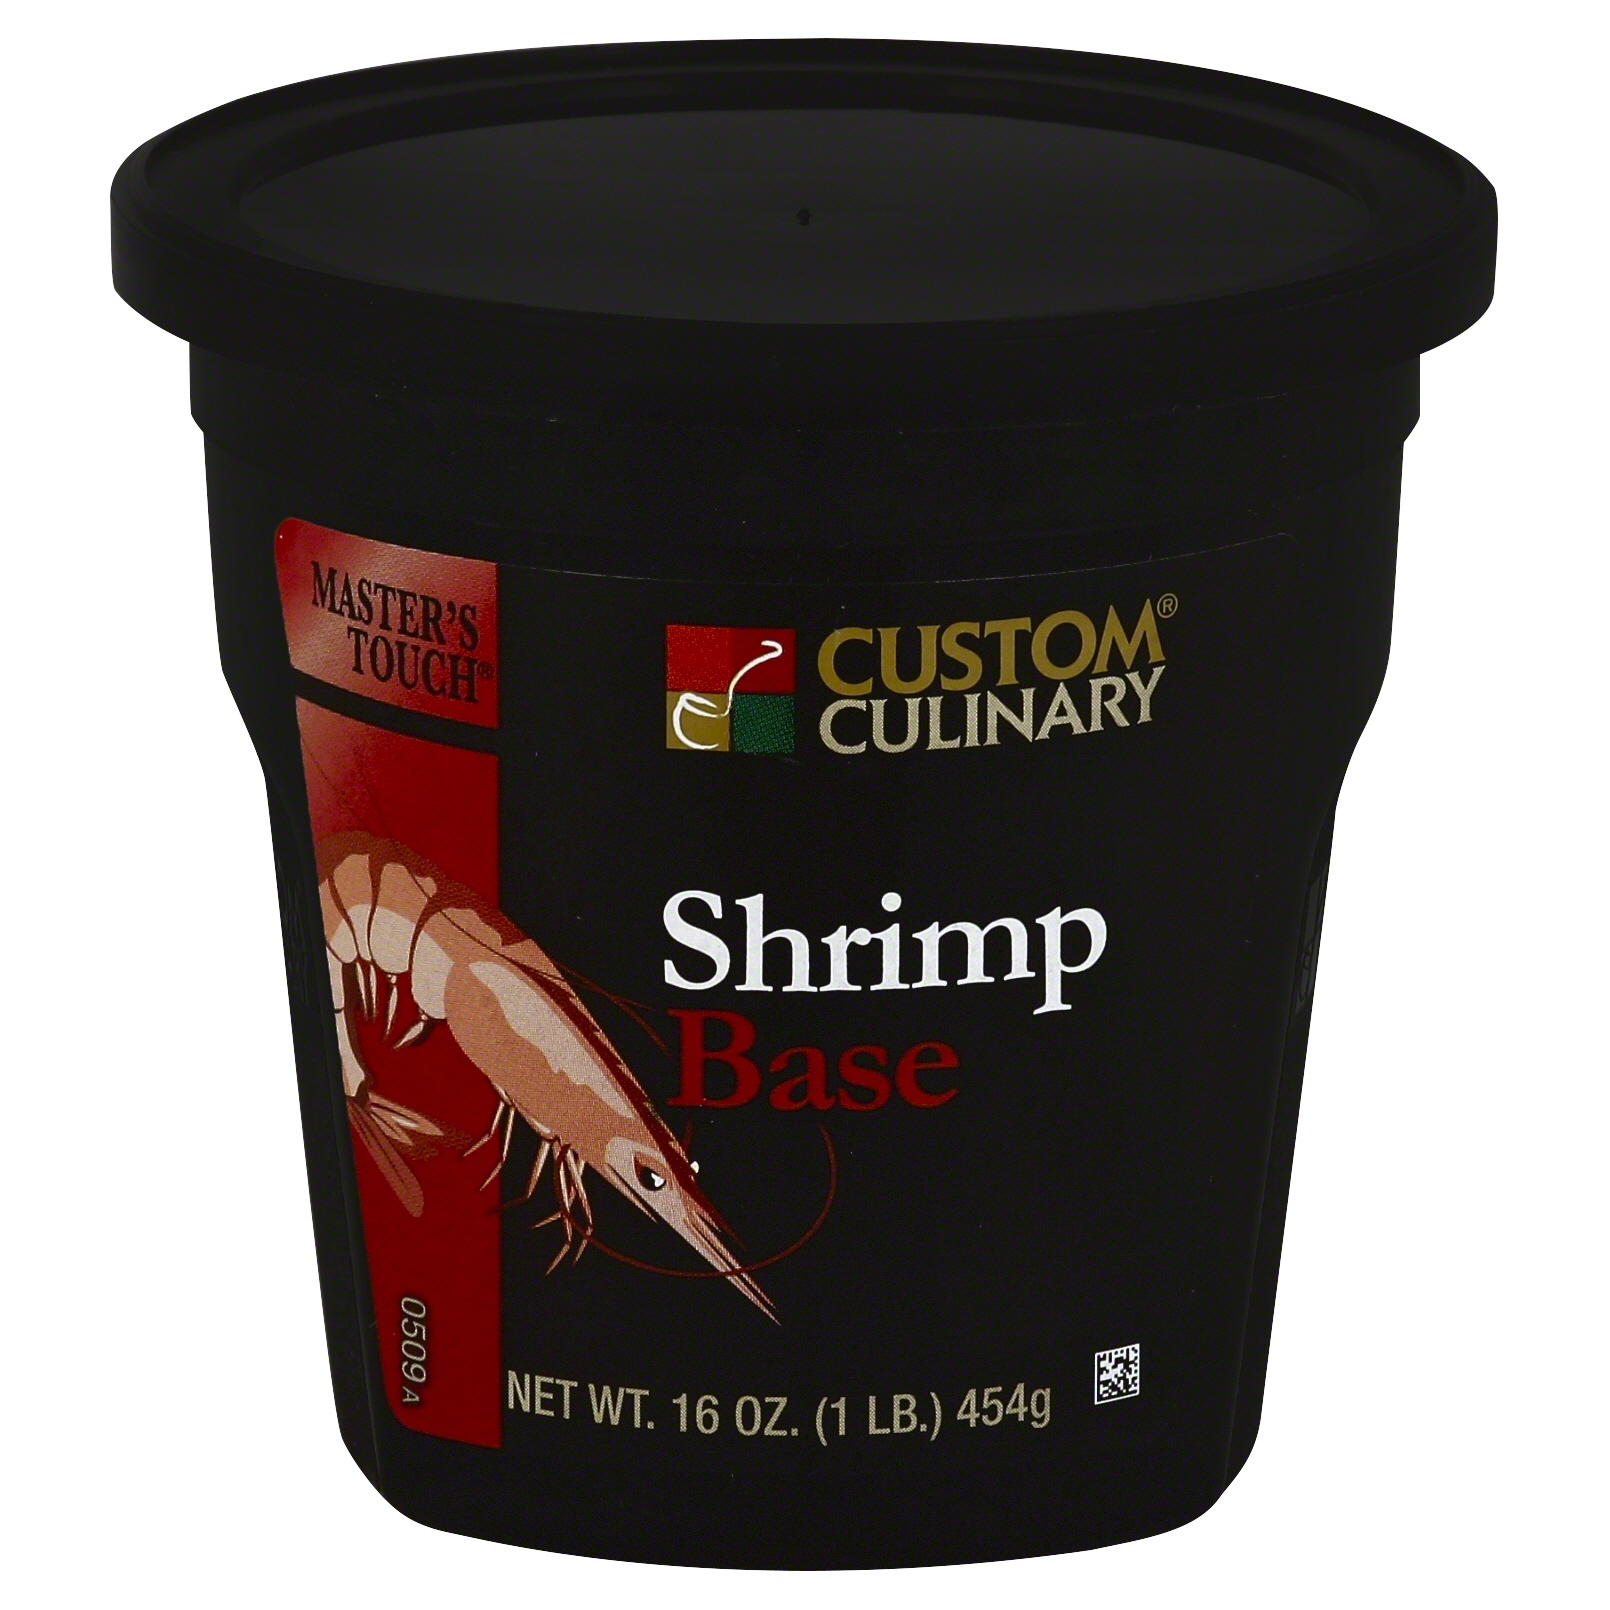 0509 - Masters Touch Shrimp Base